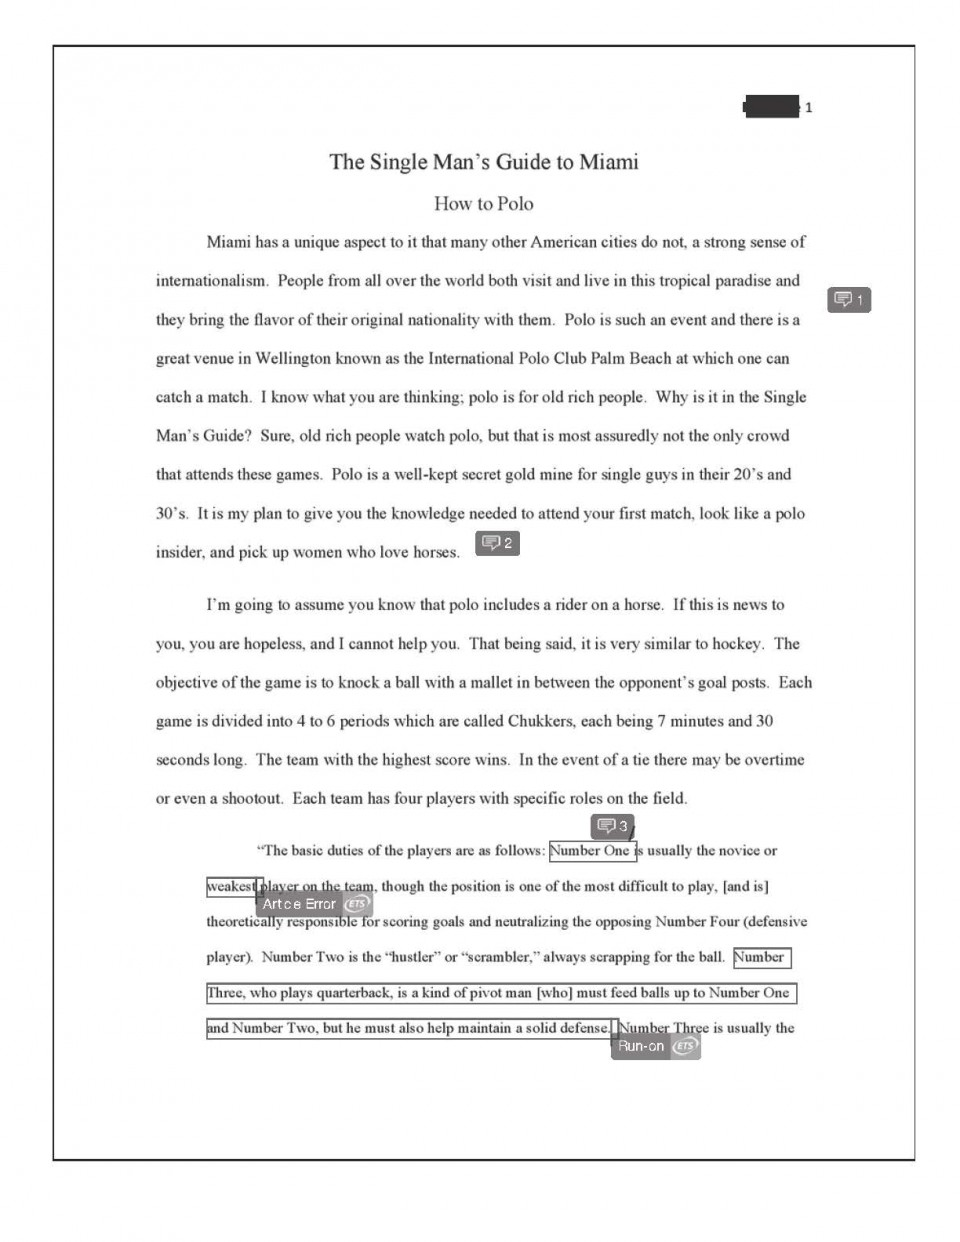 005 Informative Essay Topics Essays Sample Funny Argumentative For Middle School Final How To Polo Redacted P College Students Hilarious Good Remarkable Expository Secondary 4th Grade 5th 960